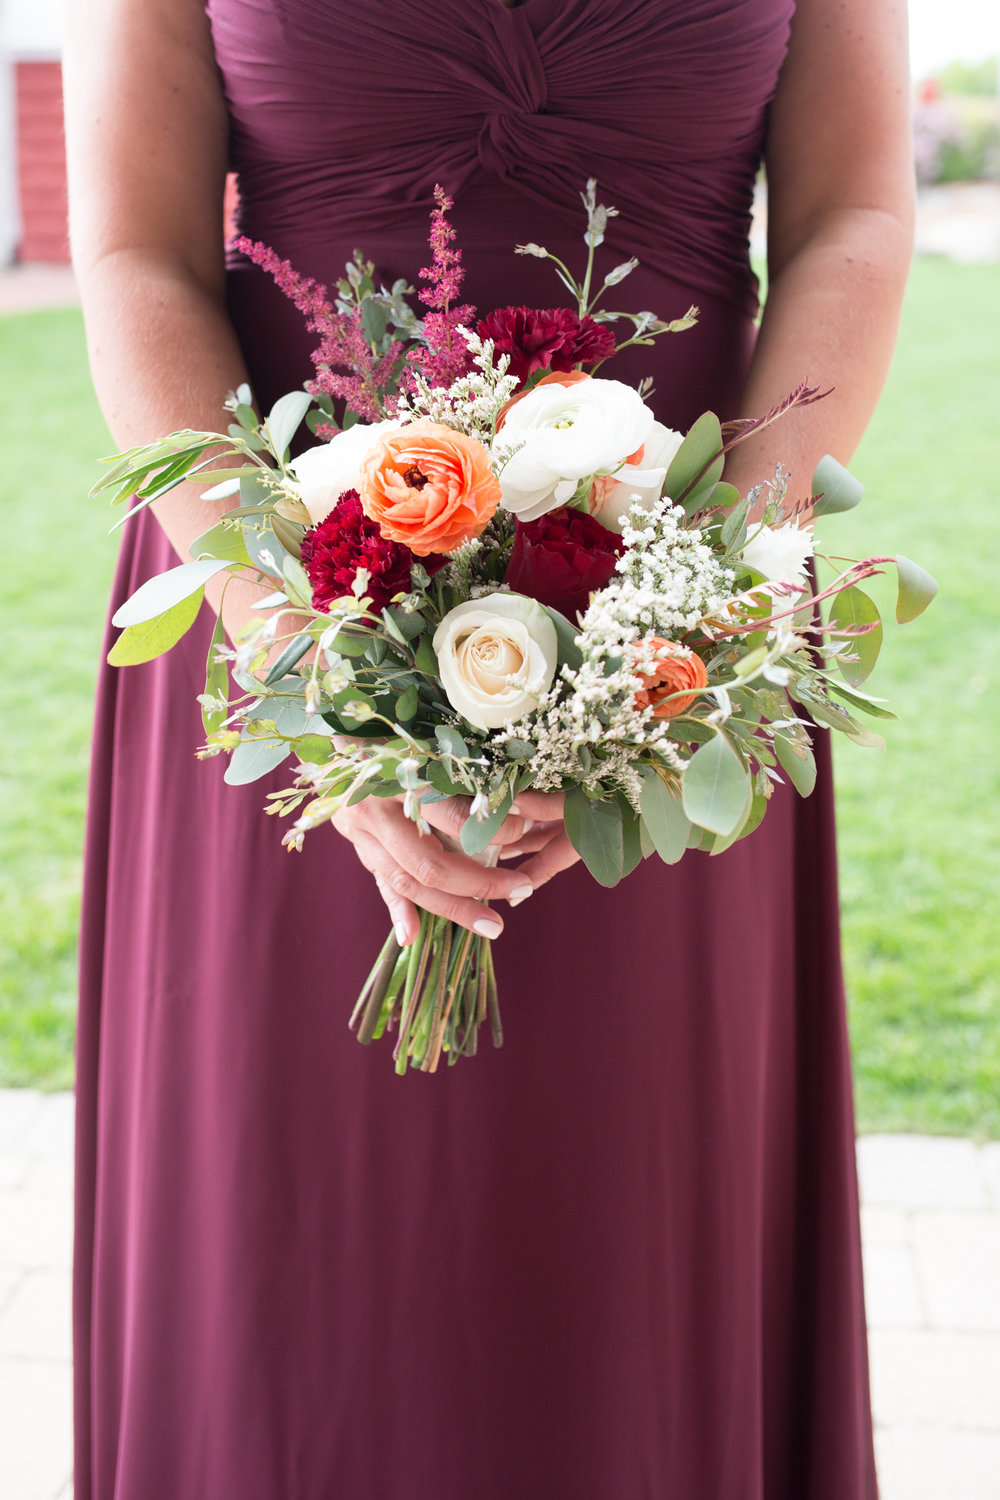 Wedding at Brighton Acres in Oshkosh Wedding - Whit Meza Photography